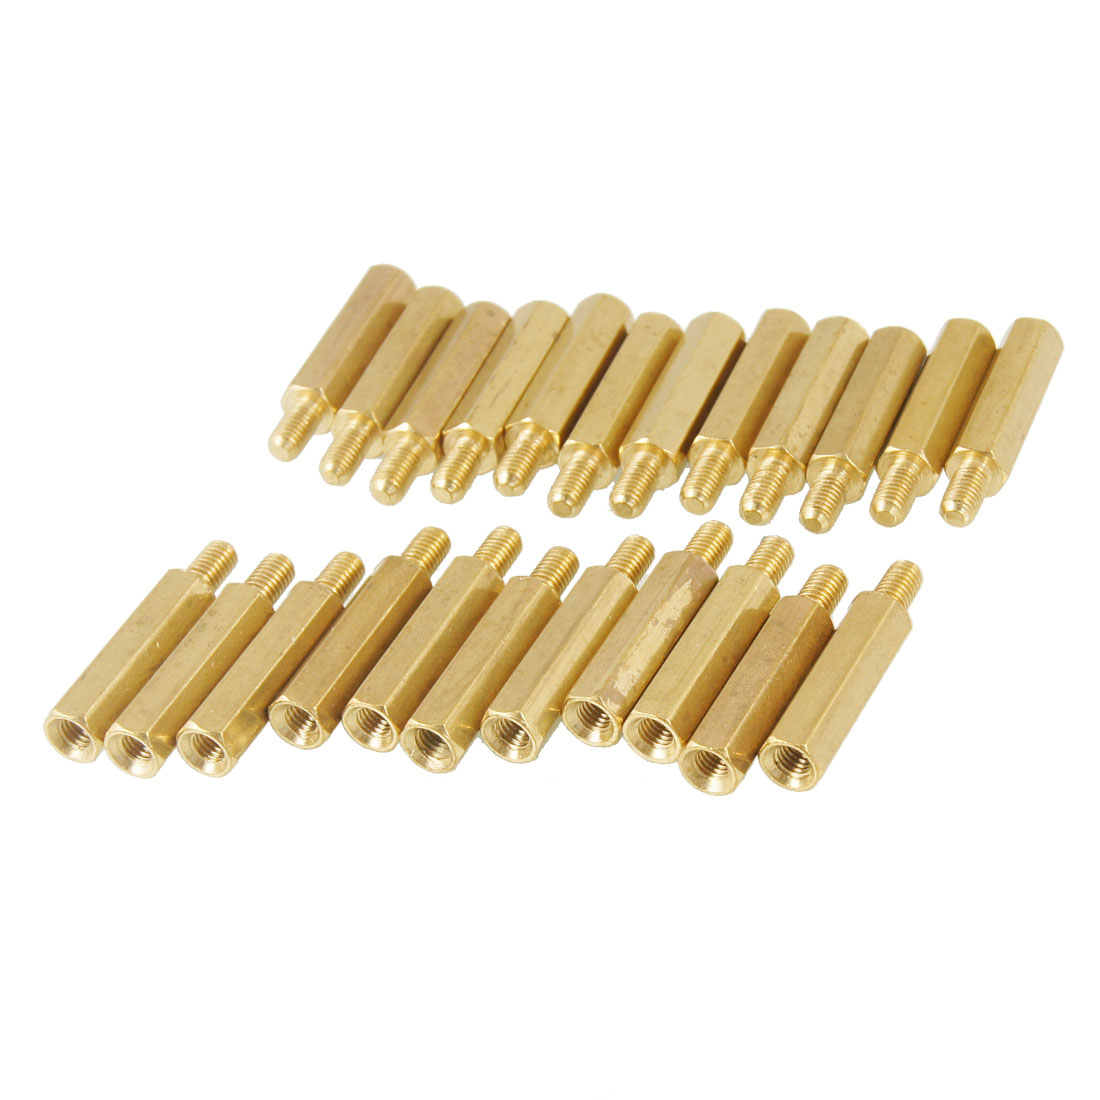 18mm Body 50 Pcs Brass Threaded PCB Stand-off Spacer M3 Male x M3 Female